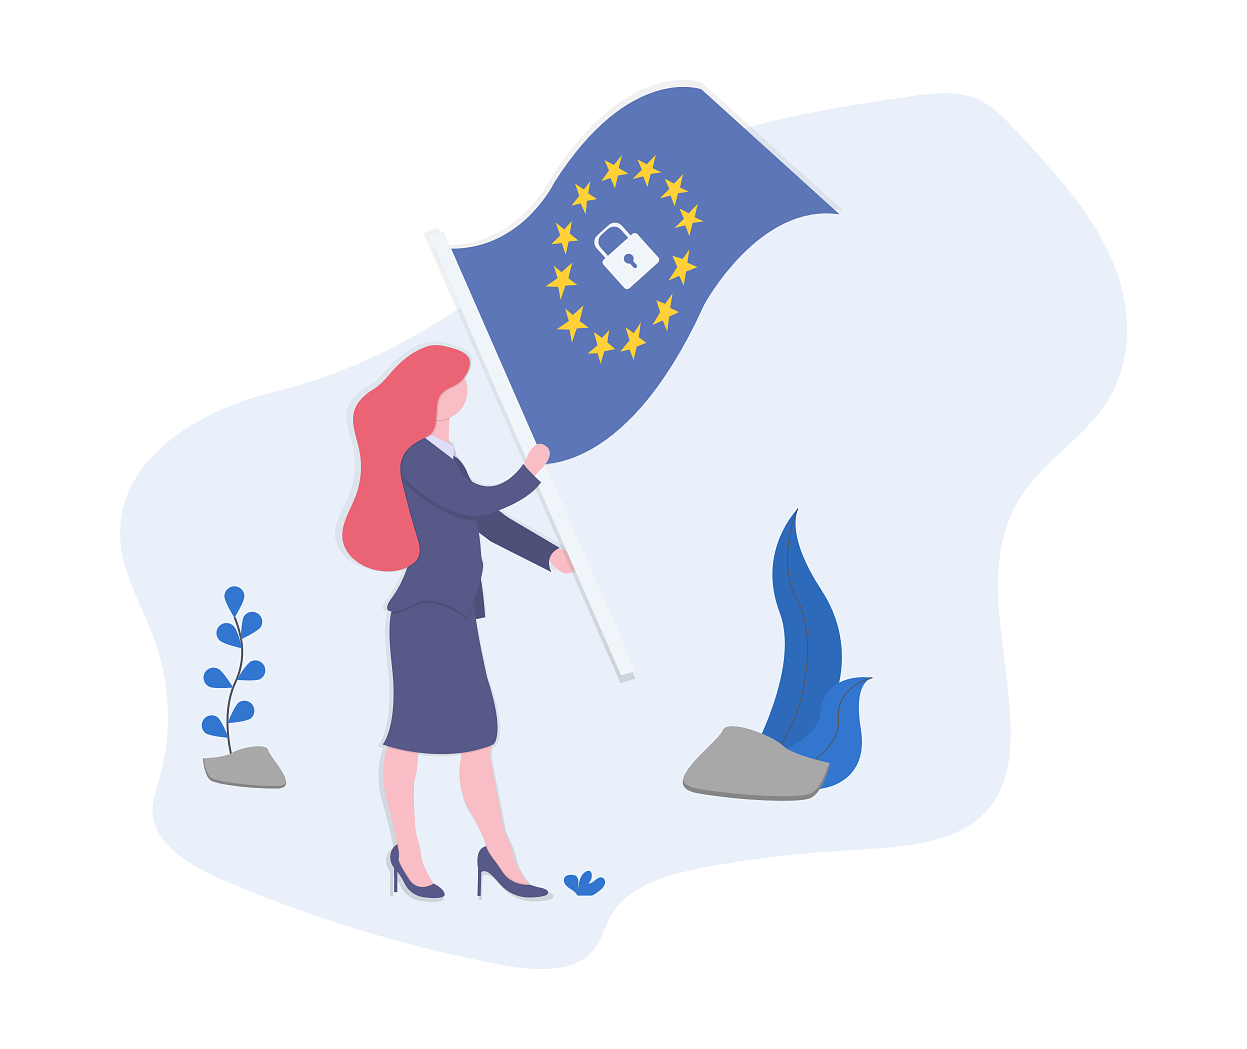 Woman planting an EU flag with a security symbol in the middle into the ground.